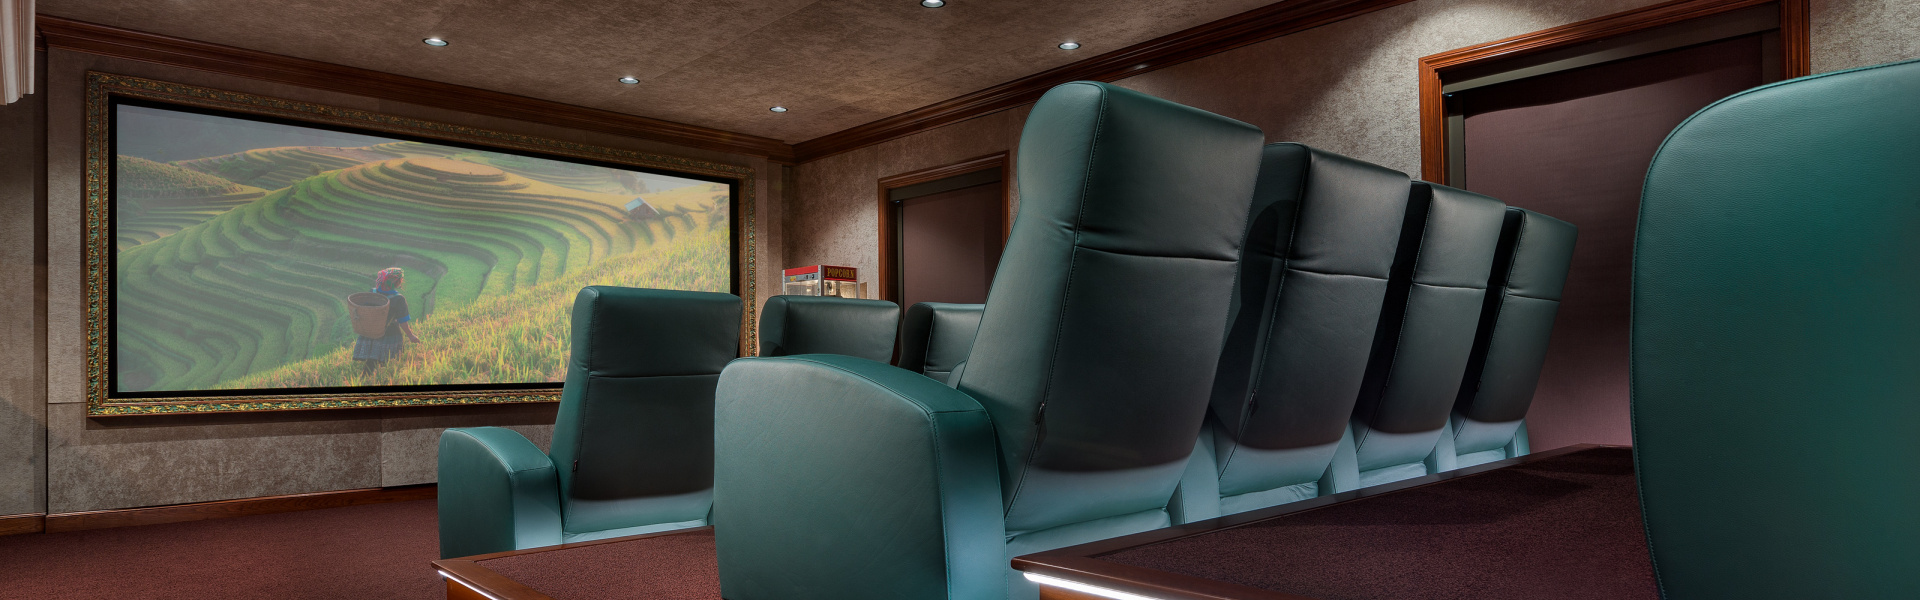 Smart home installation by Beyond Home Theater for Malibu